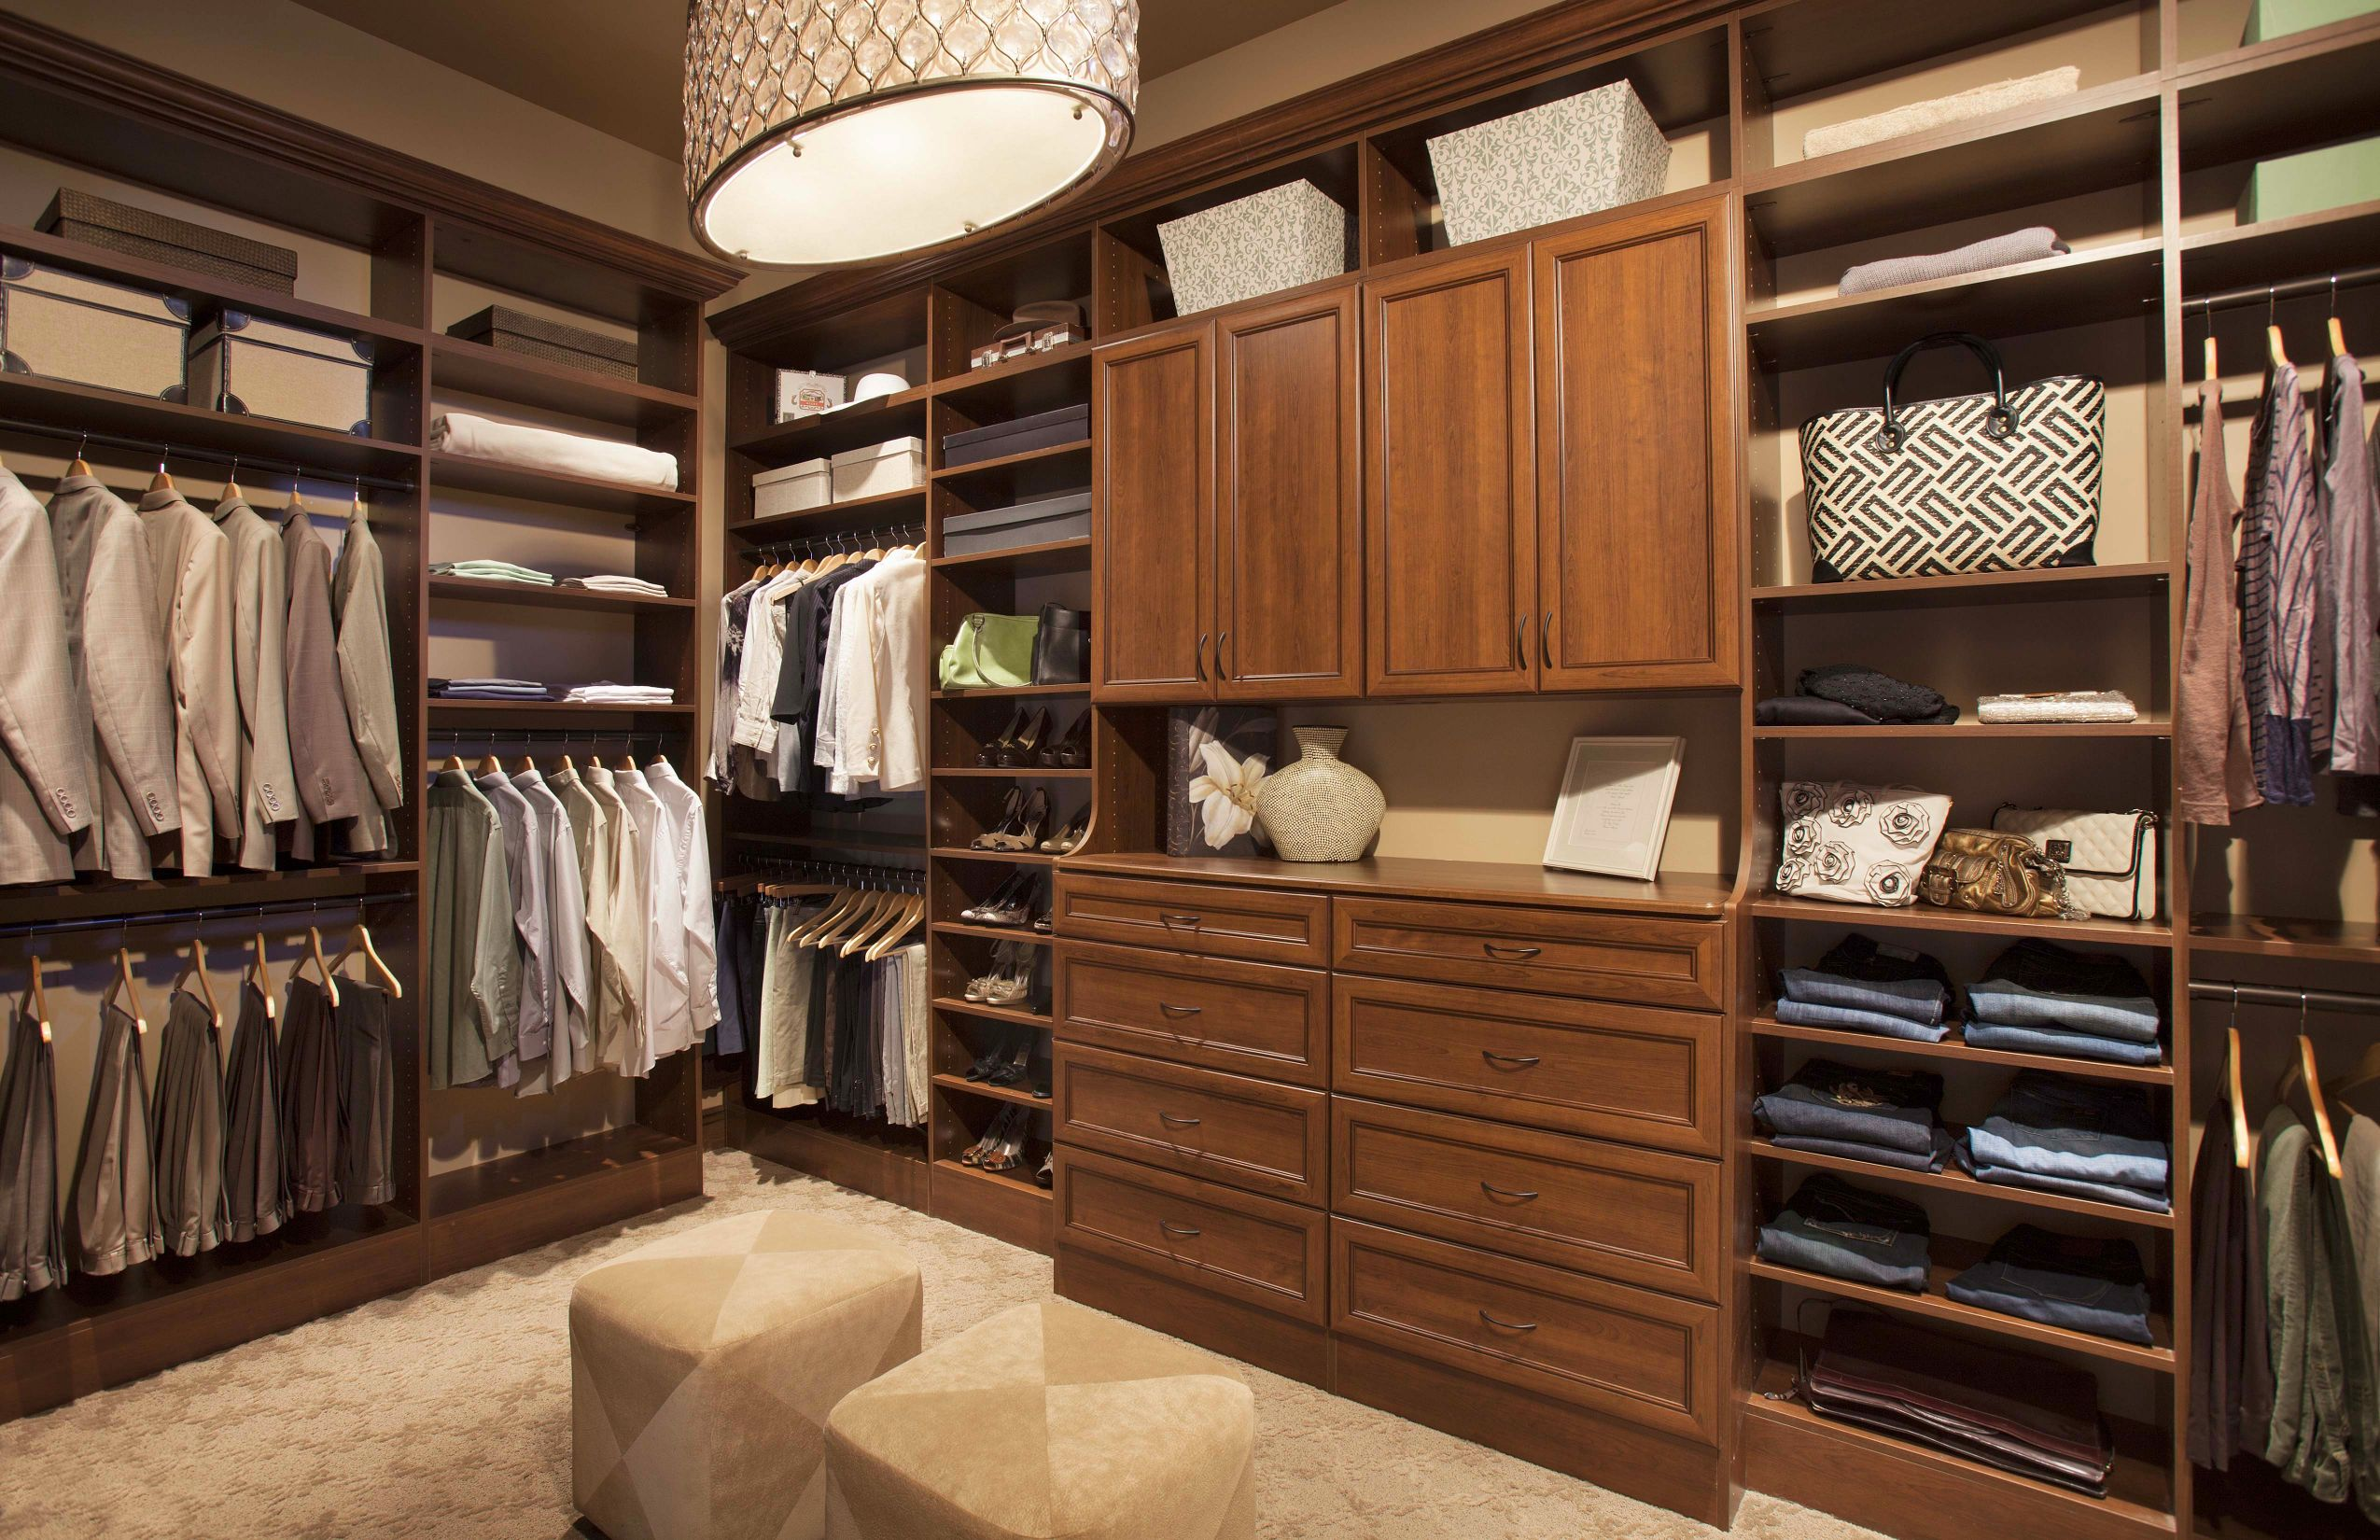 Superbe Our Walk In Closet Gallery